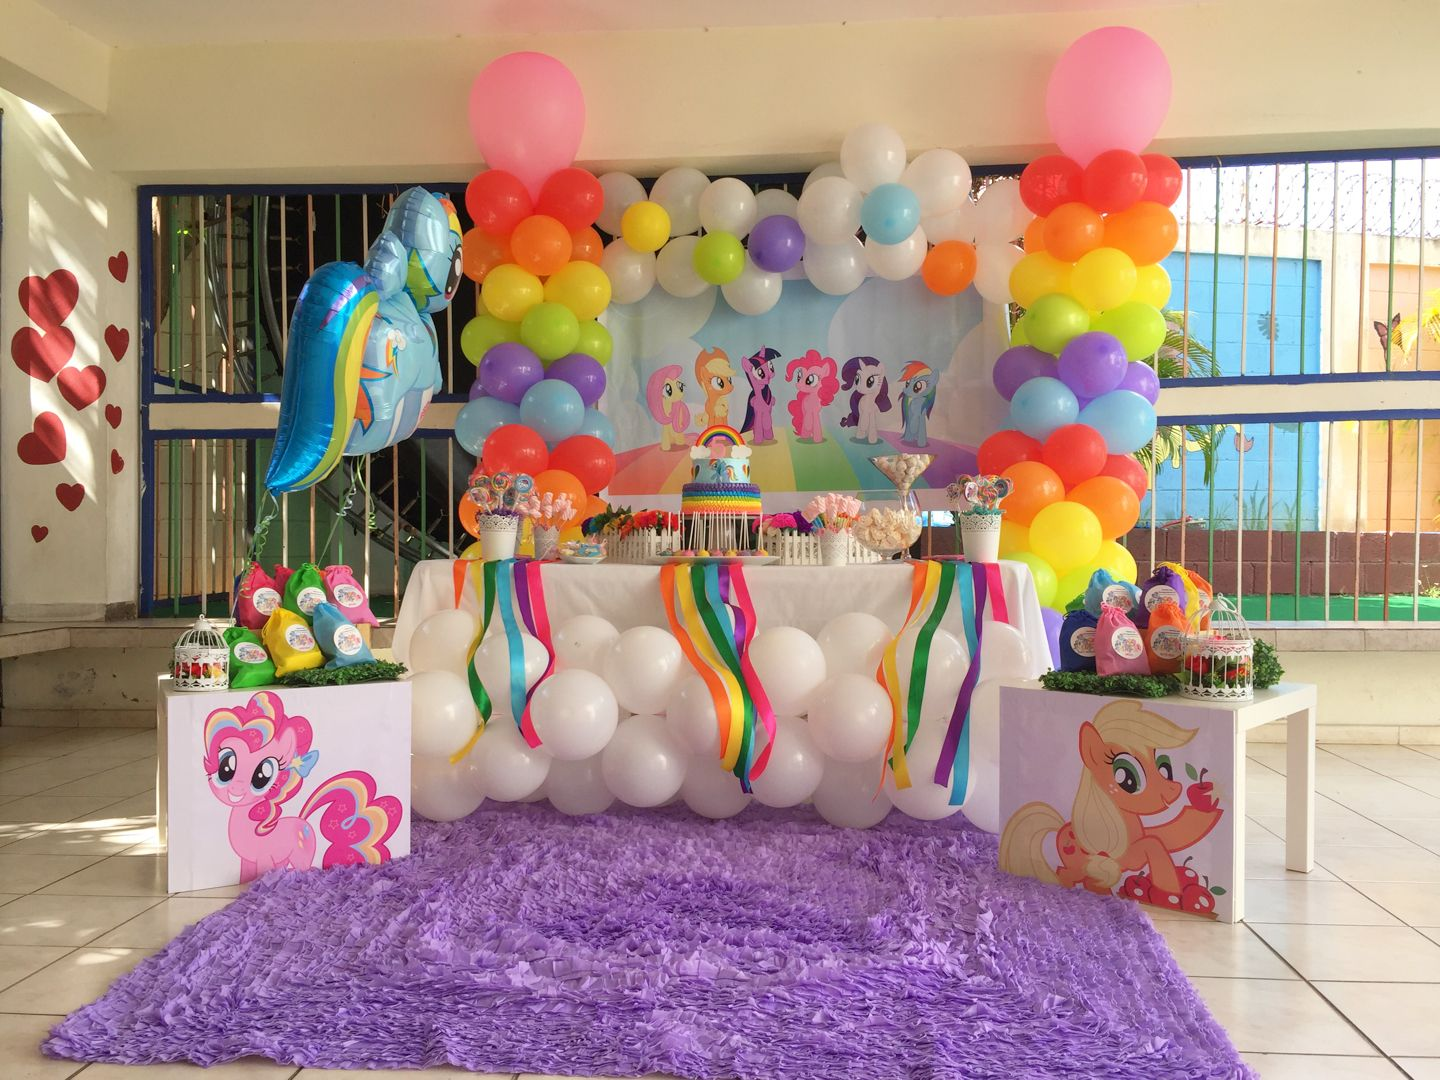 Pin By Paola Andujar On My Little Pony Party Ideas Little Pony